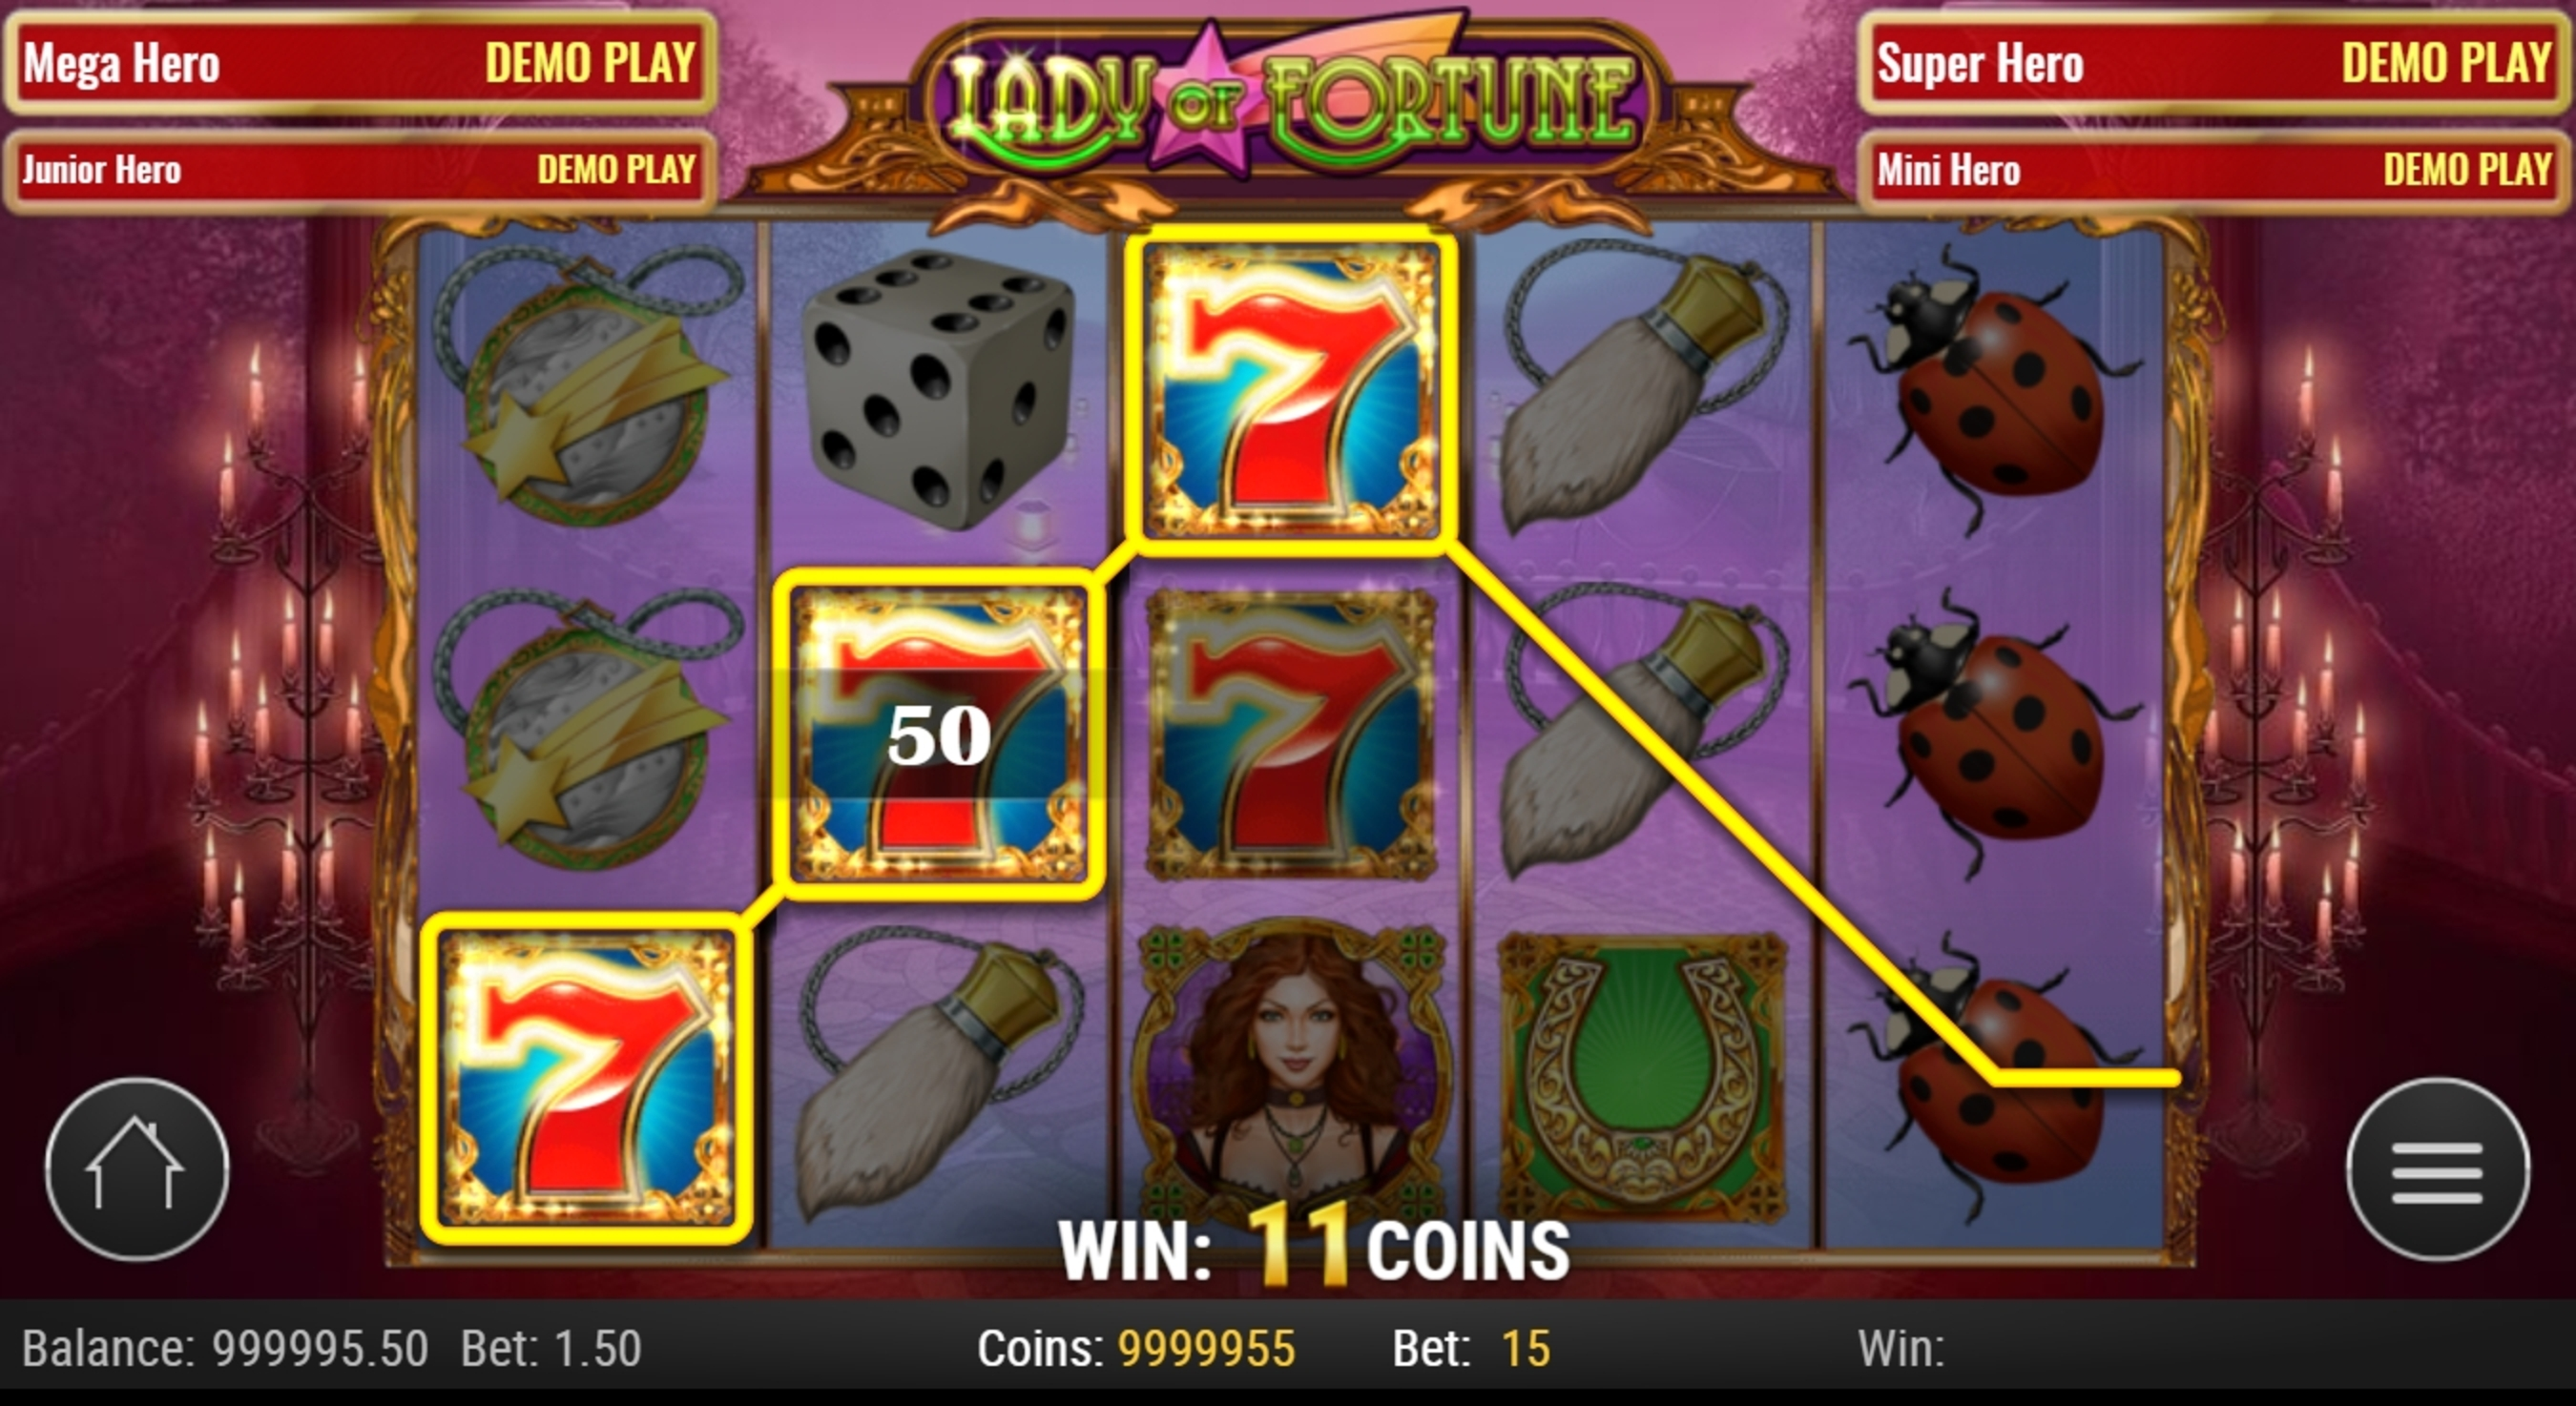 Win Money in Lady of Fortune Free Slot Game by Play'n Go